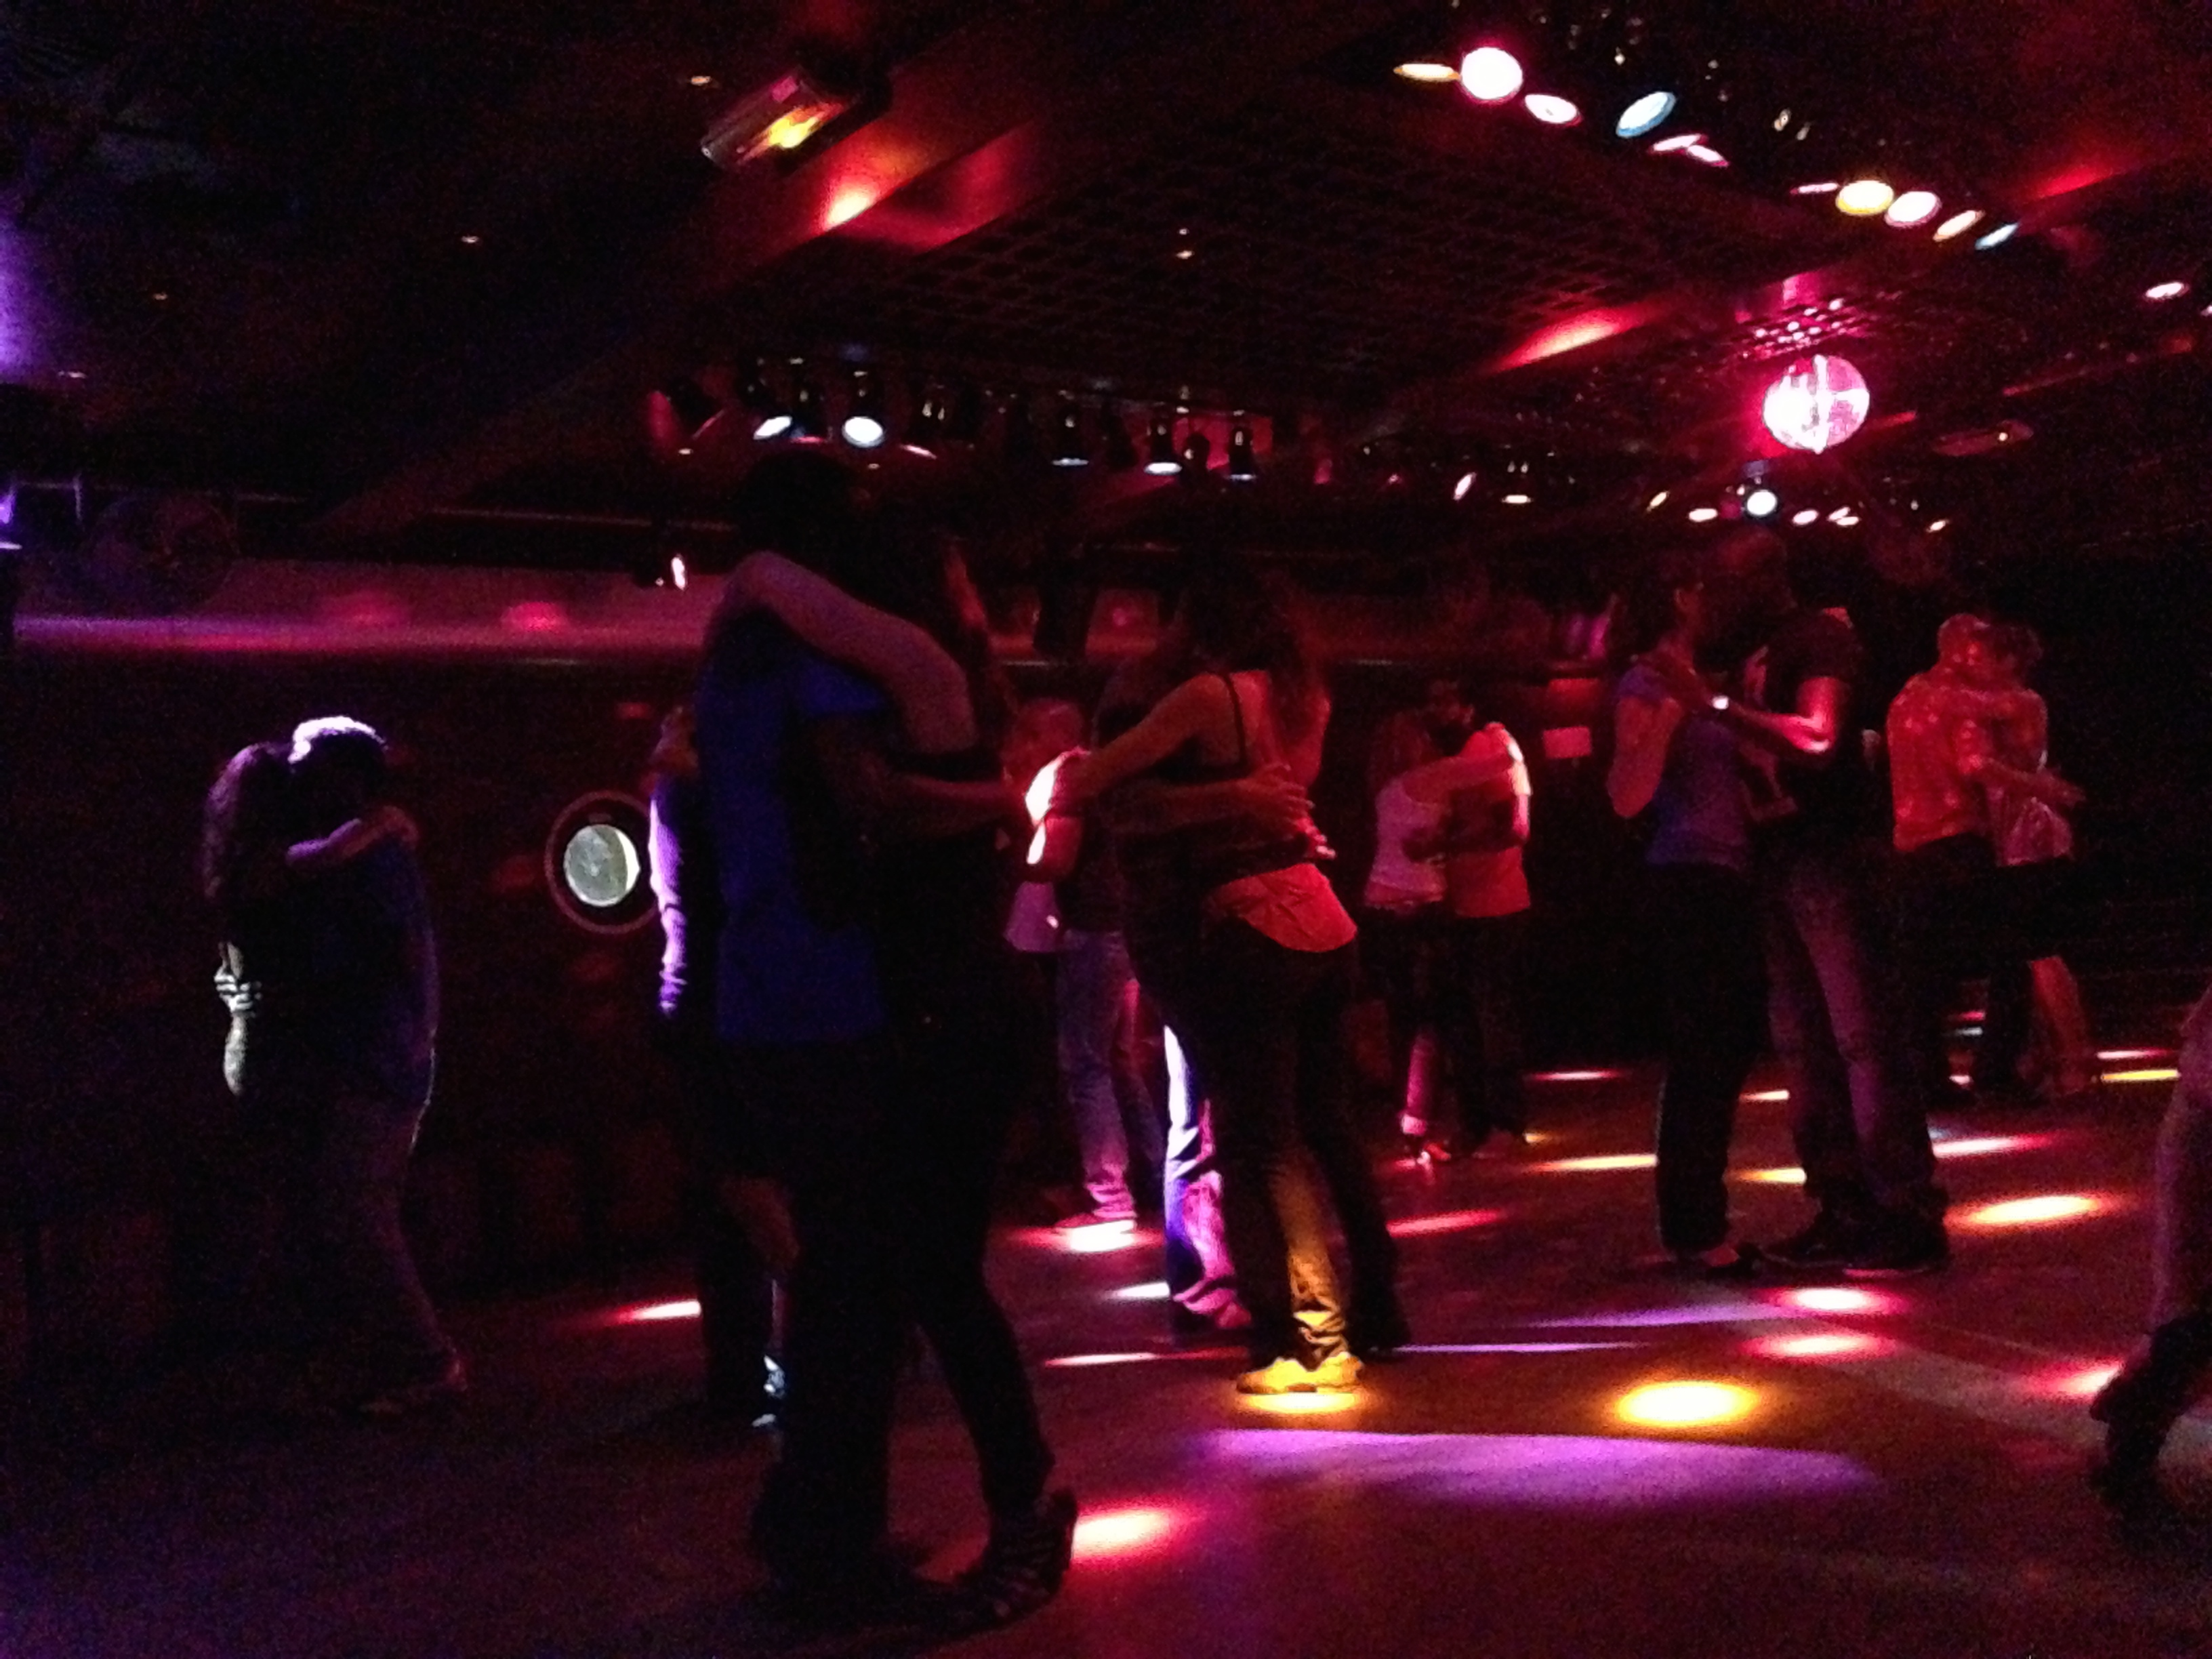 kizomba on the boat 'Nix Nox', Seine, Paris